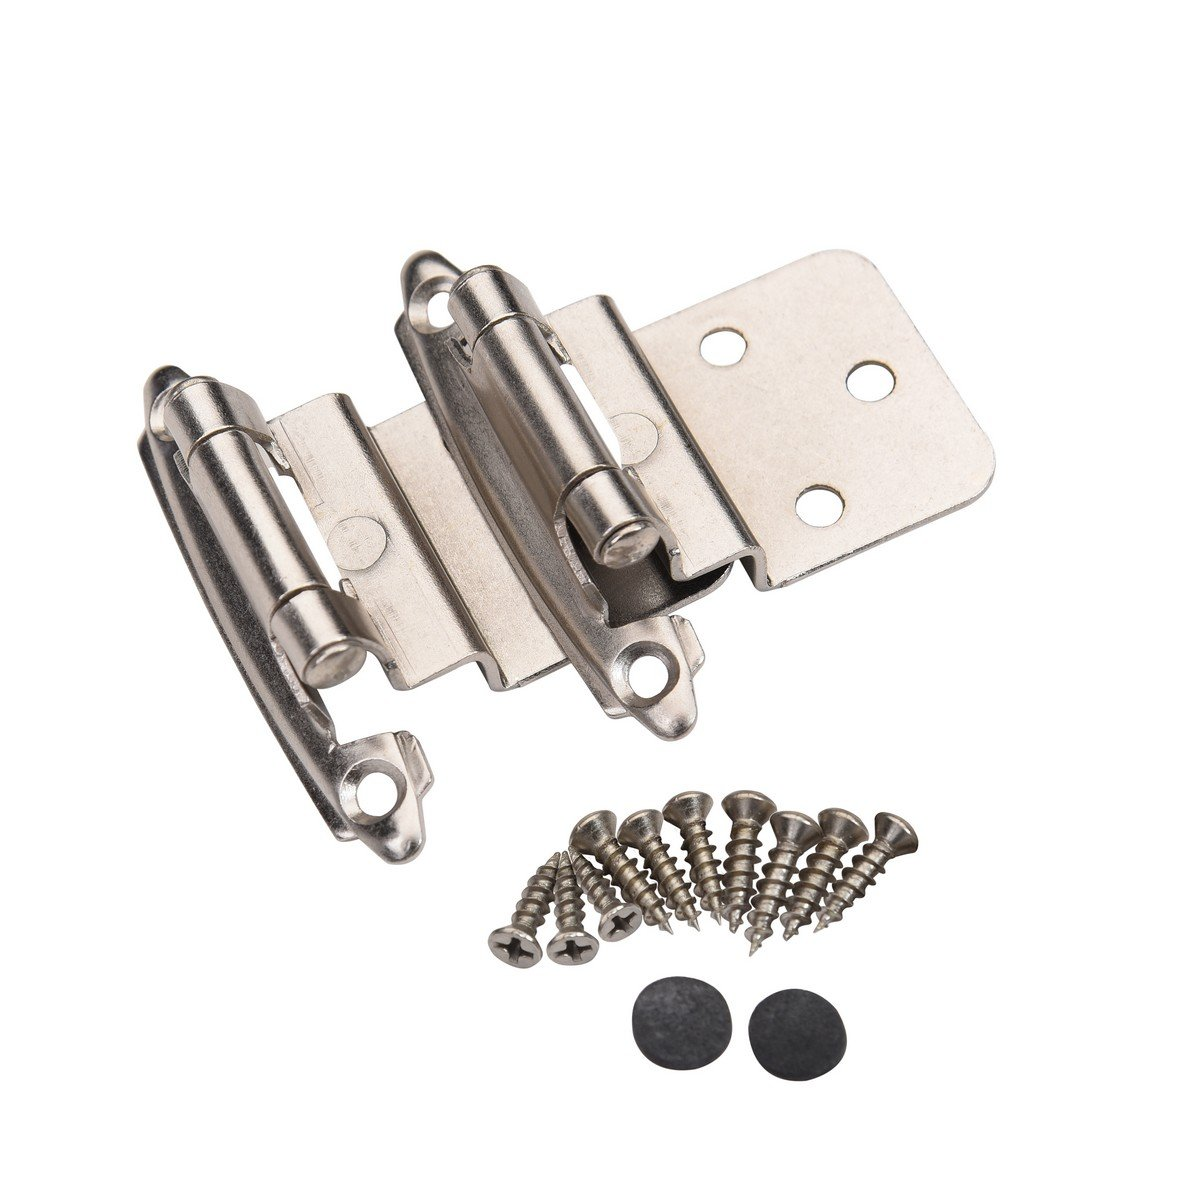 East West Consolidated 62726 Self Closing 3/8 inch Offset Inset Cabinet Hinges Satin Nickel SN (Pack Of 25 Pair)